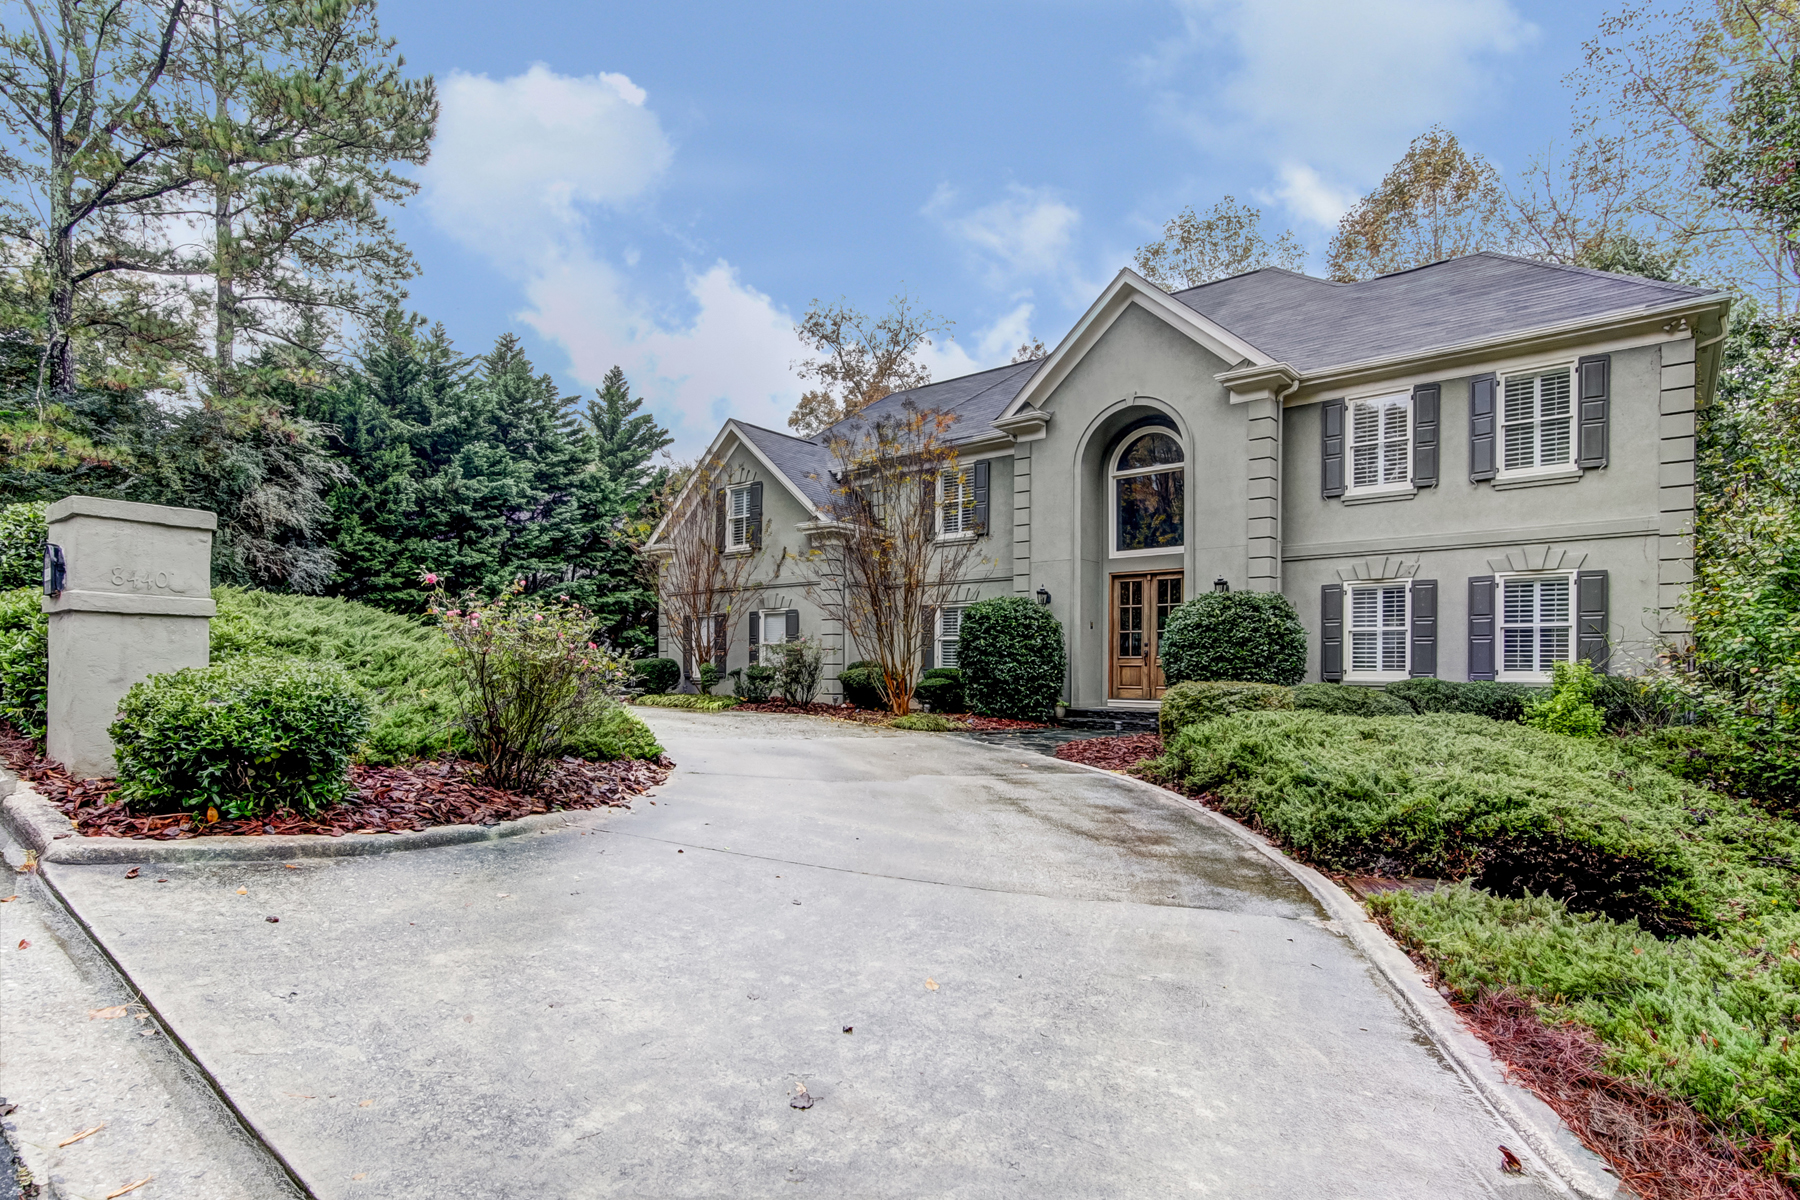 Single Family Home for Sale at Executive Beauty In Coveted Ridgemark 8440 Valemont Drive Sandy Springs, Georgia 30350 United States